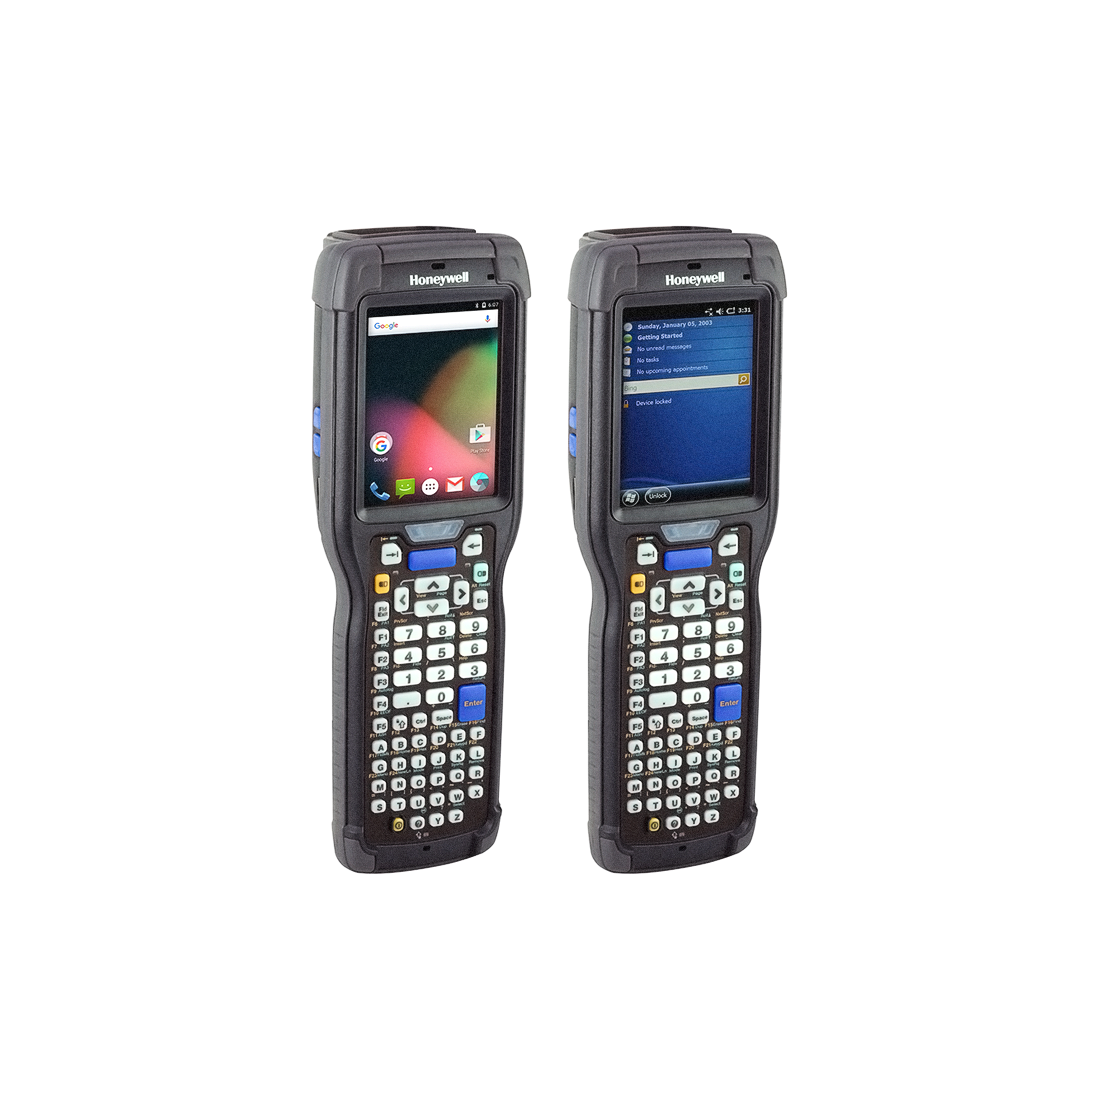 CK75/Alphanumeric/5603ER Imager/No Camera/802.11abgn/Bluetooth/Android 6 GMS/Client Pack/Std Temp/ETSI & World Wide